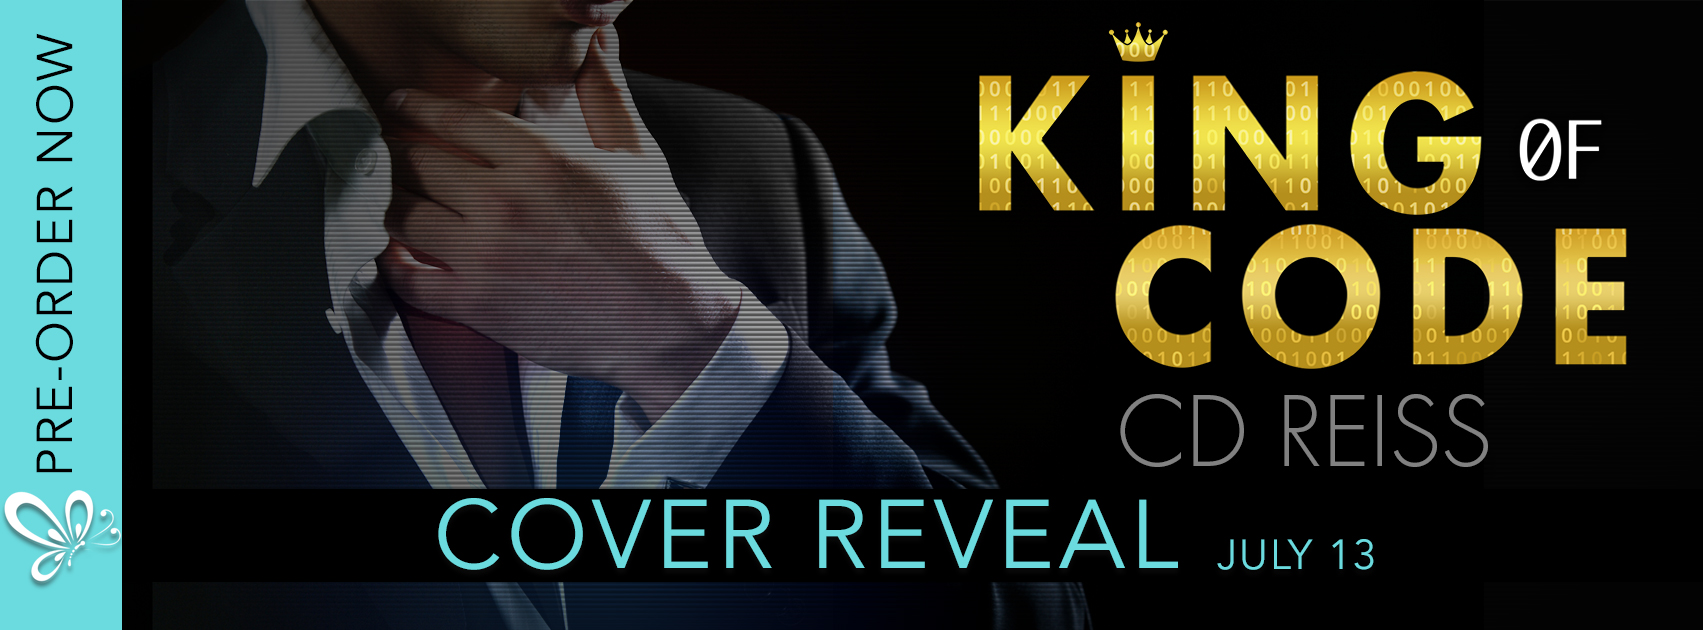 King of Code cover reveal banner